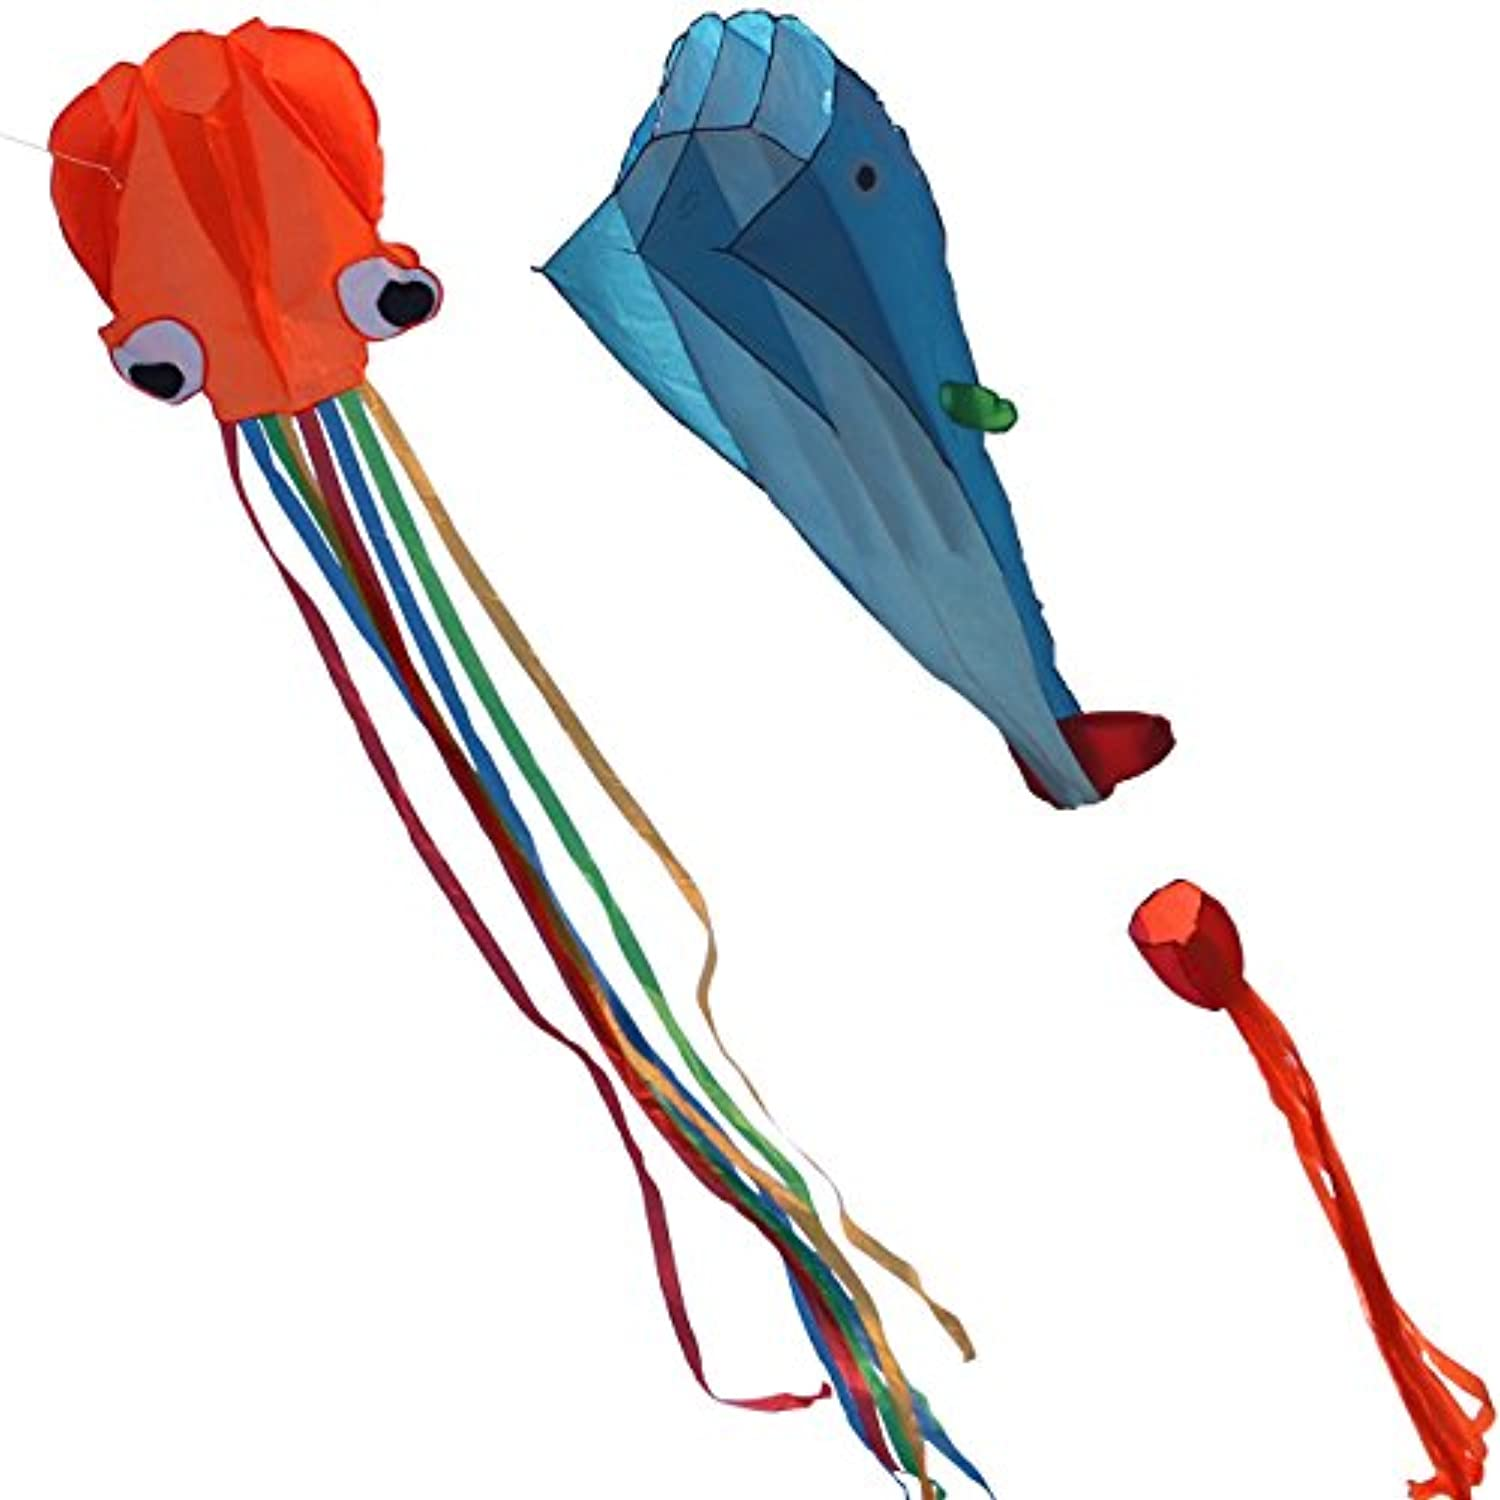 kissky 78.7 X 47.2-inch Huge Whale Kite + 27.5-inch Octopus Kite with Line Flyingツール